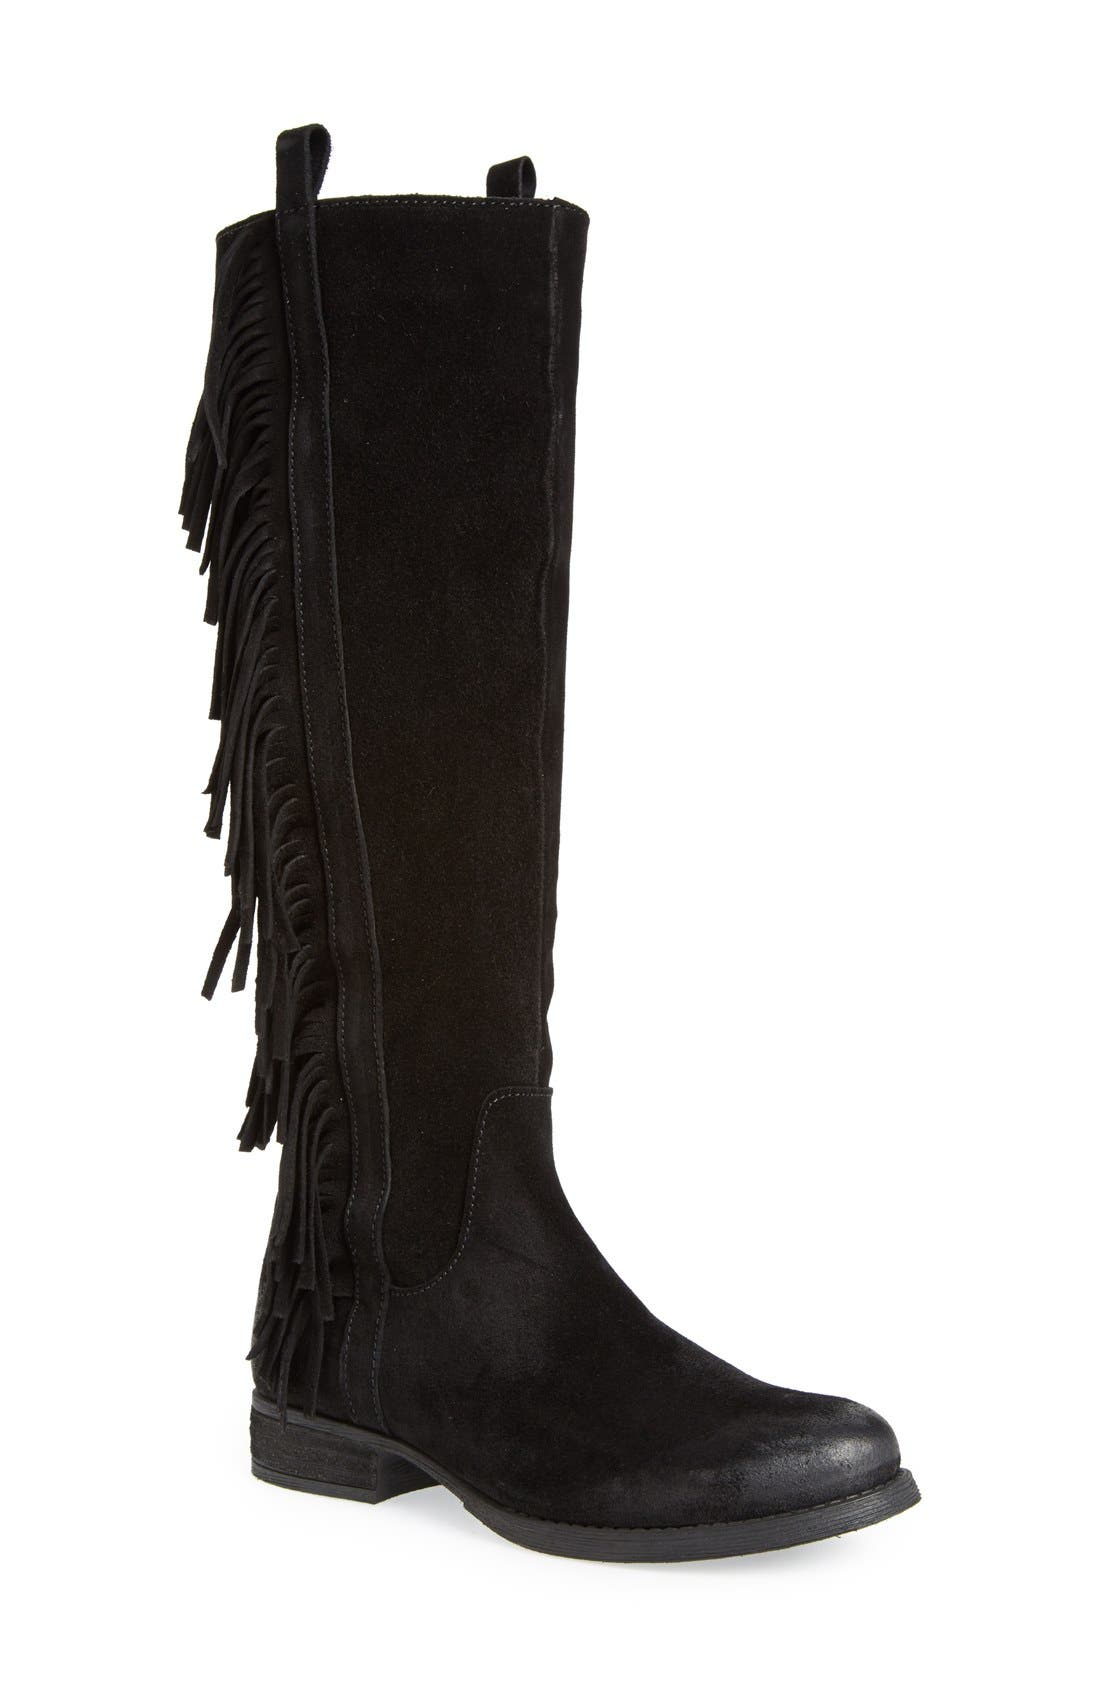 STEVEN BY STEVE MADDEN Steven by Steve Madden 'Dallton' Tall Fringe Boot, Main, color, 006